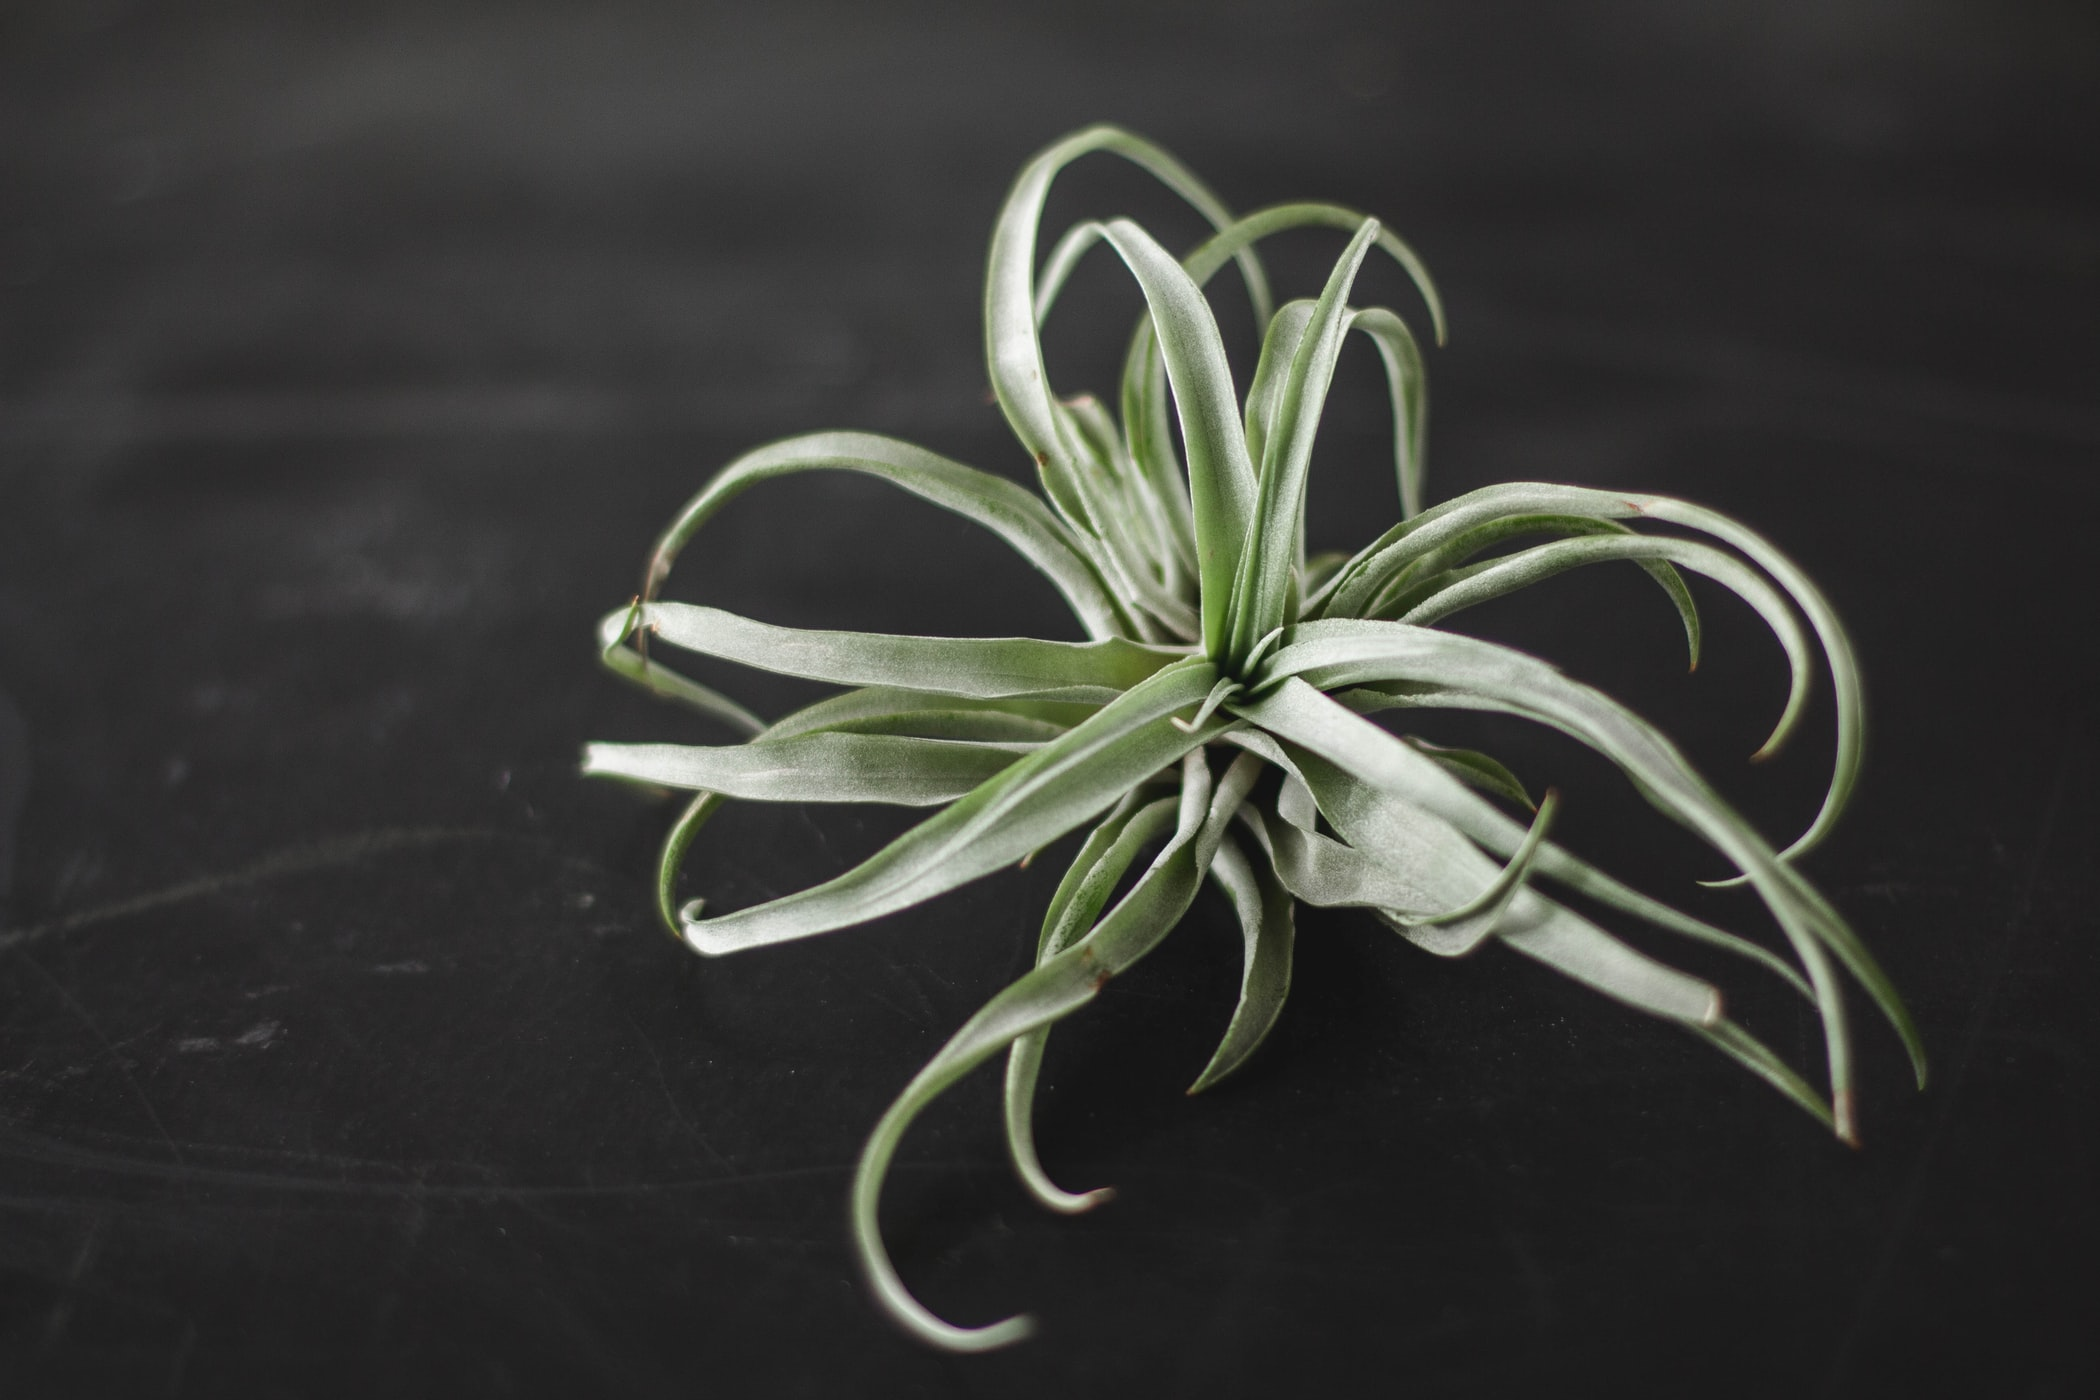 Air plant care, how to care for your air plant considering lighting, water and fertilizer.